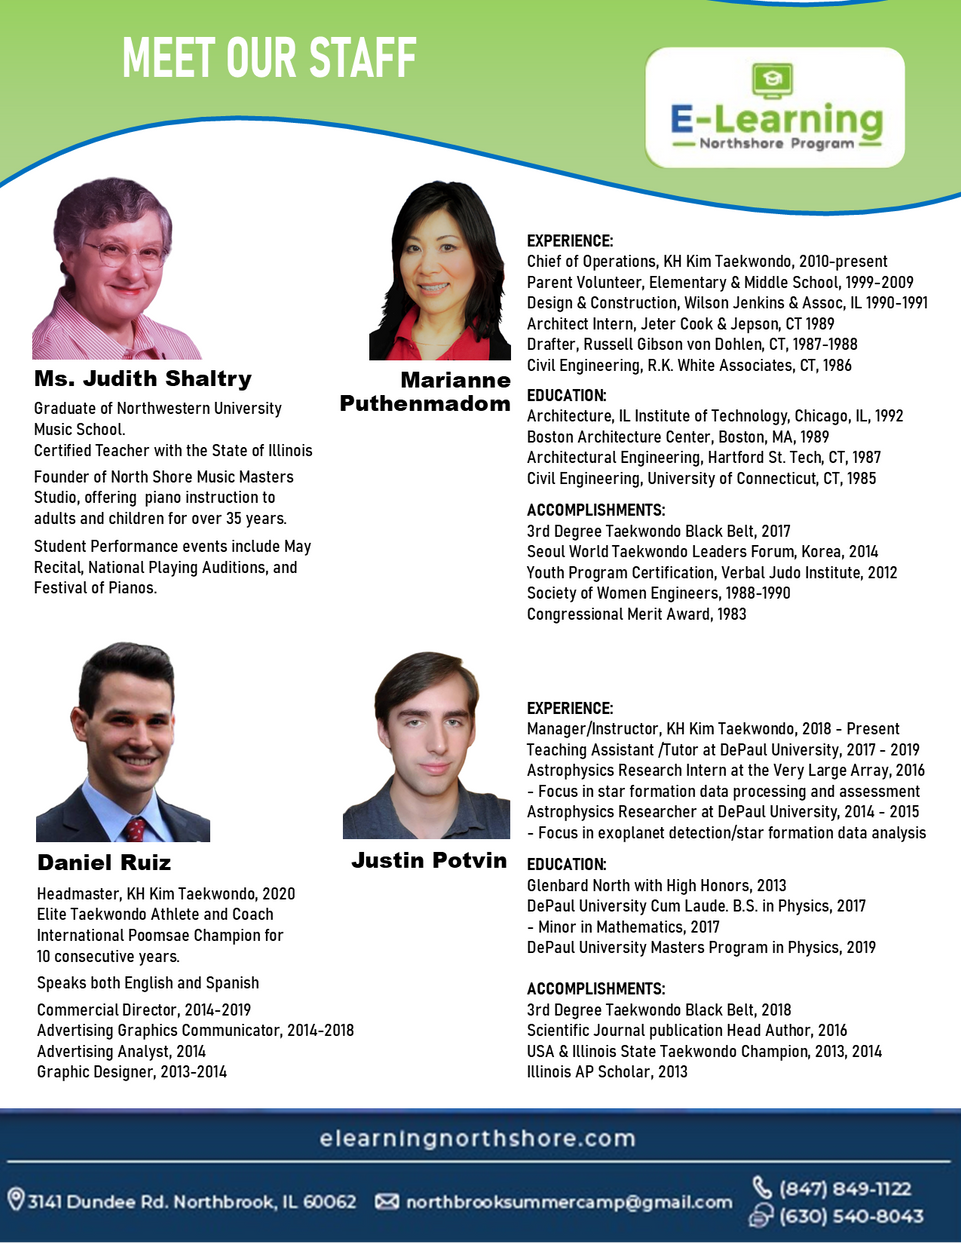 E-Learning Staff Flyer.png